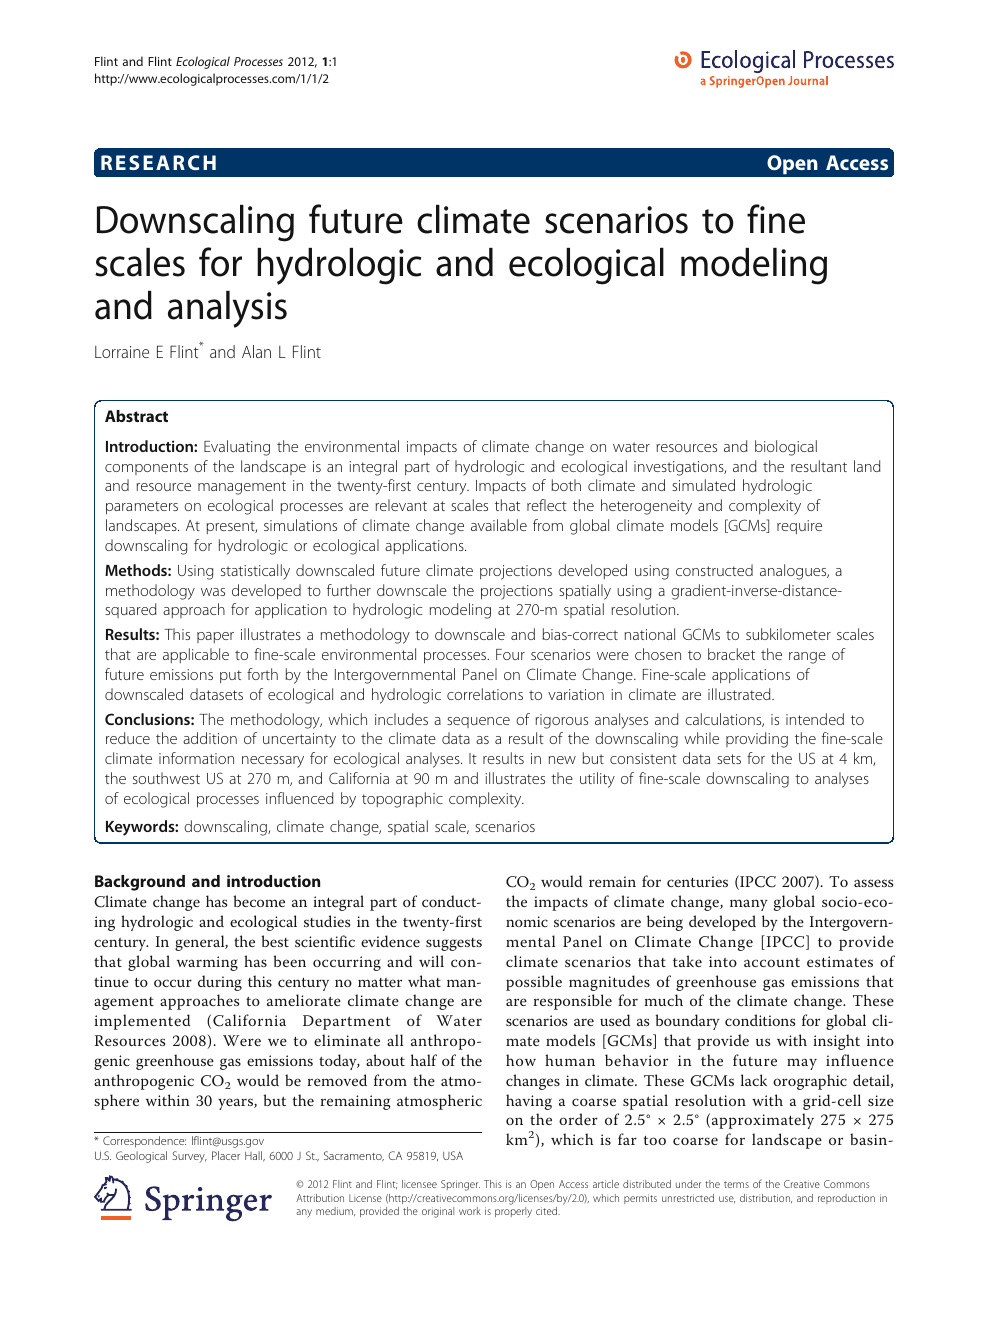 Downscaling future climate scenarios to fine scales for